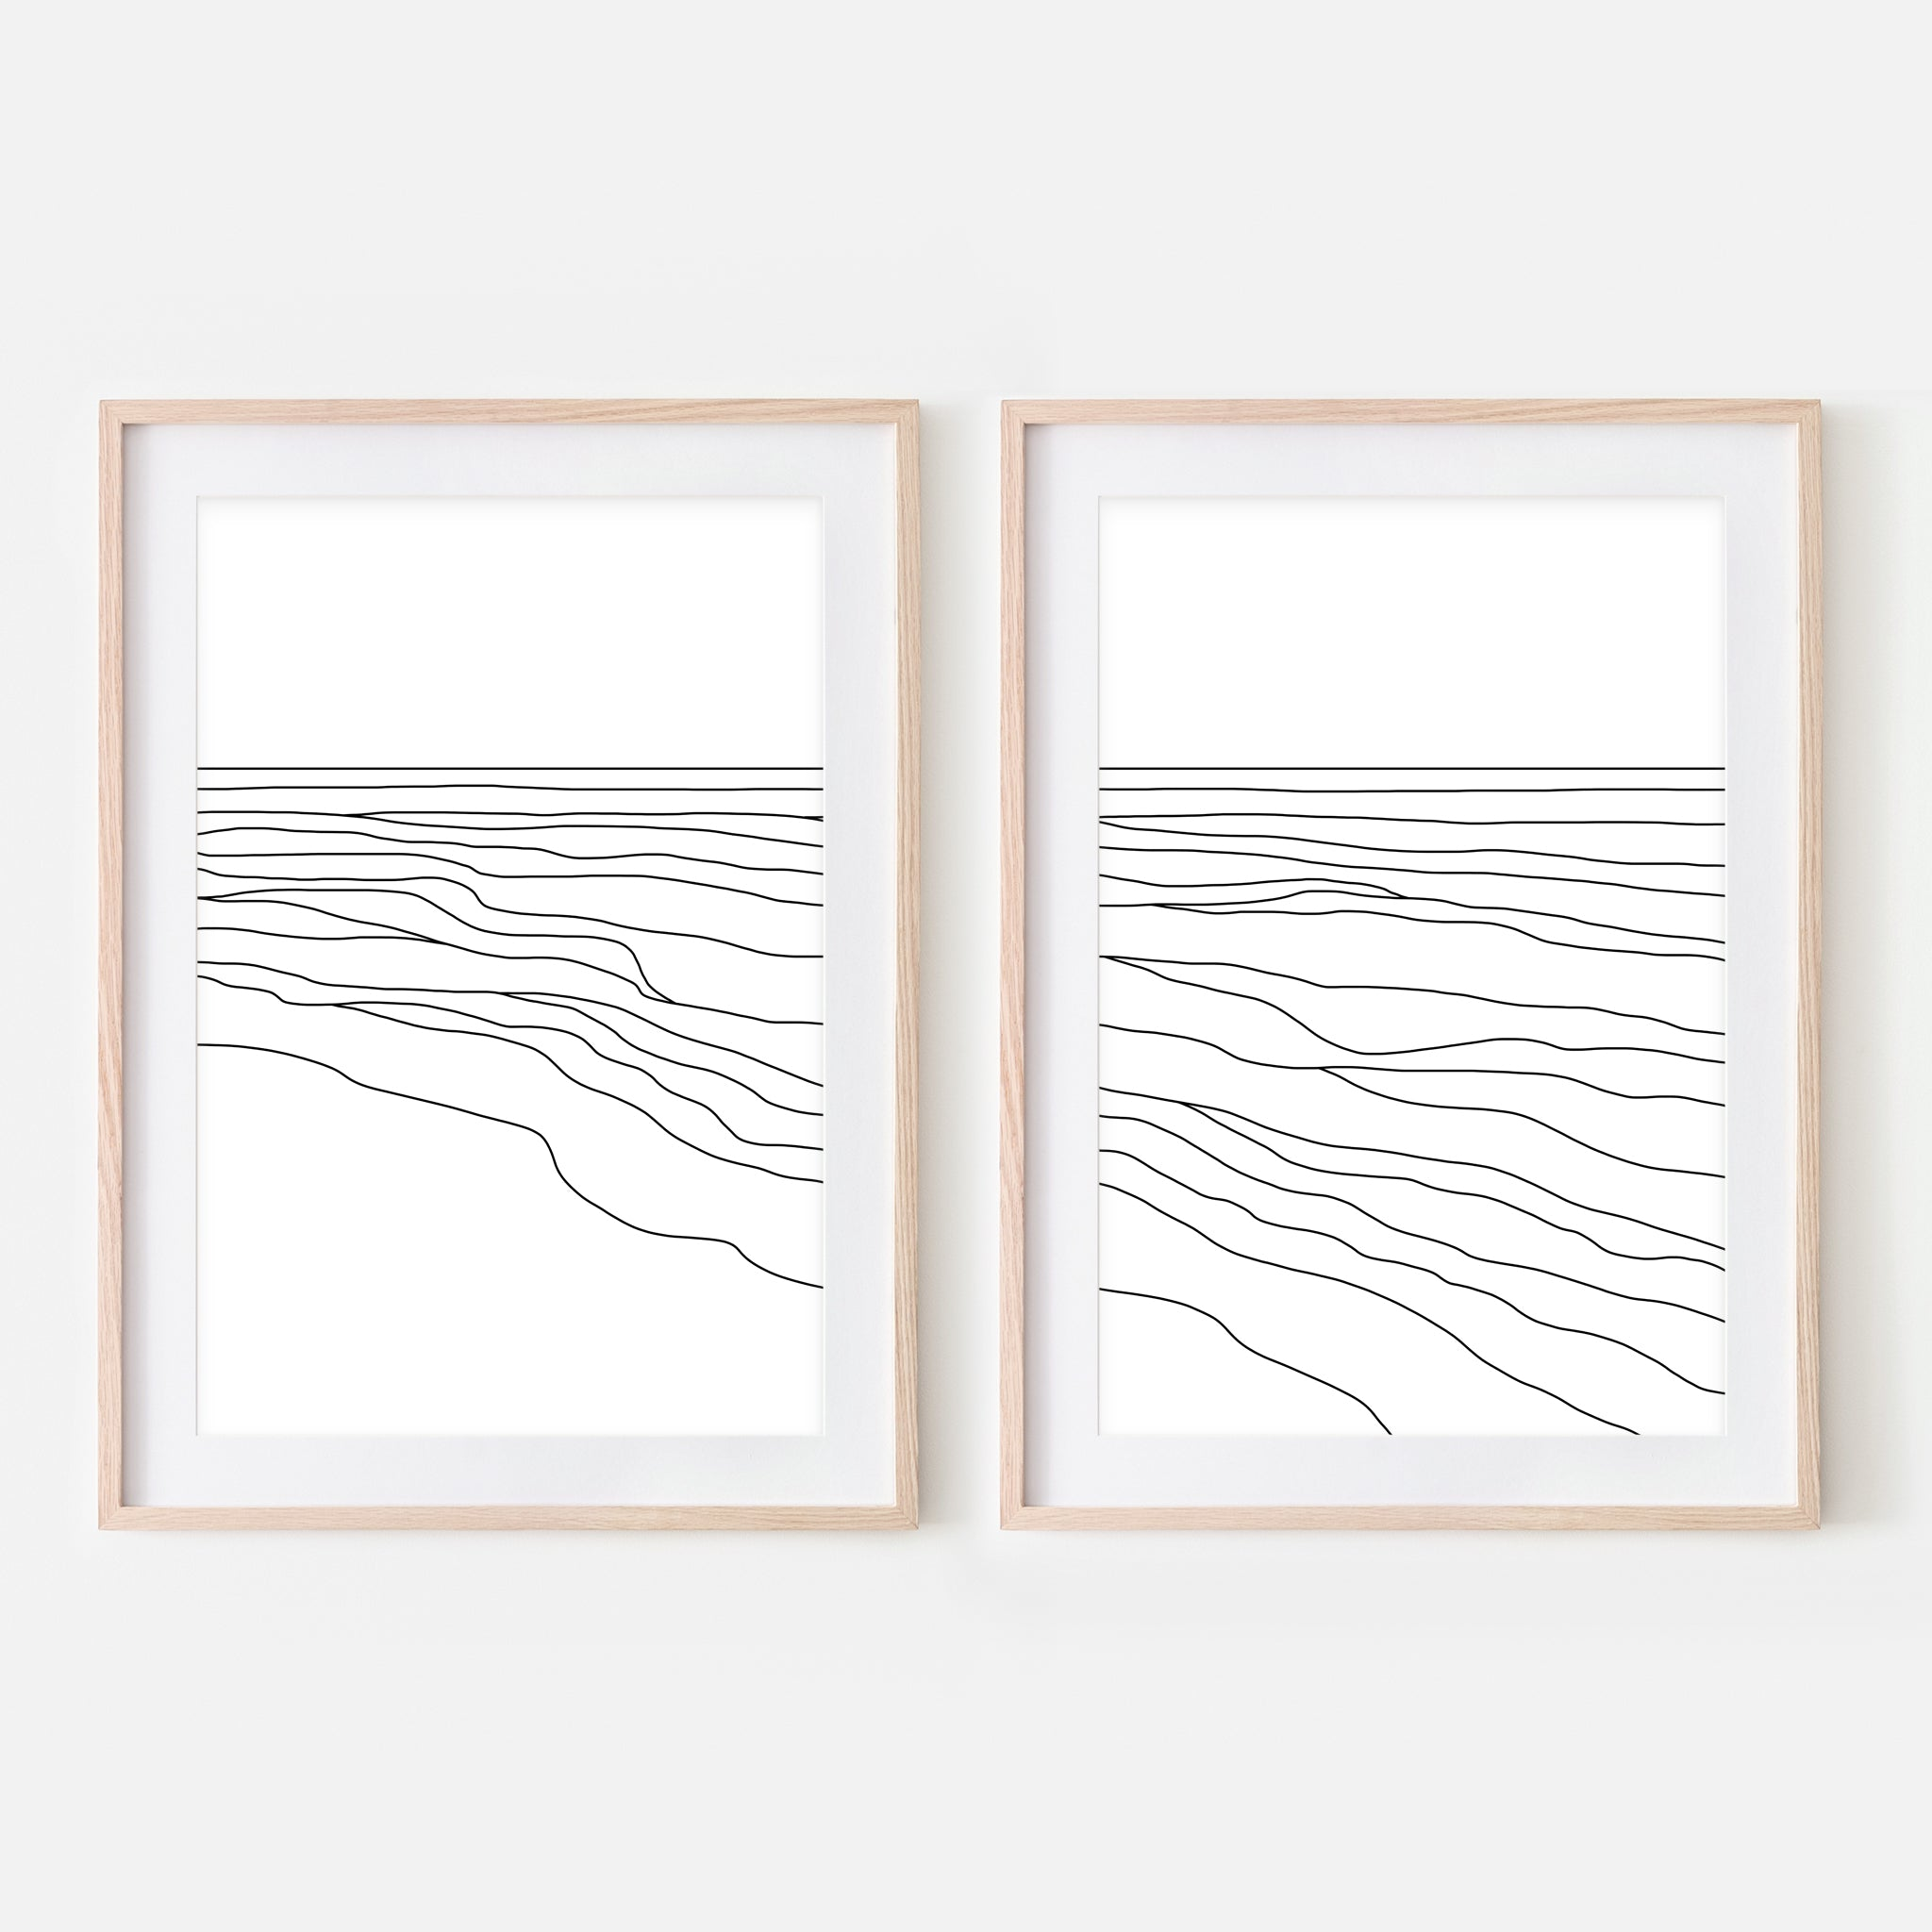 Beach Set No. 4 - Set of 2 Wall Art - Ocean Waves Line Art - Coastal Decor - Minimalist Abstract Landscape - Black and White Print, Poster or Printable Download